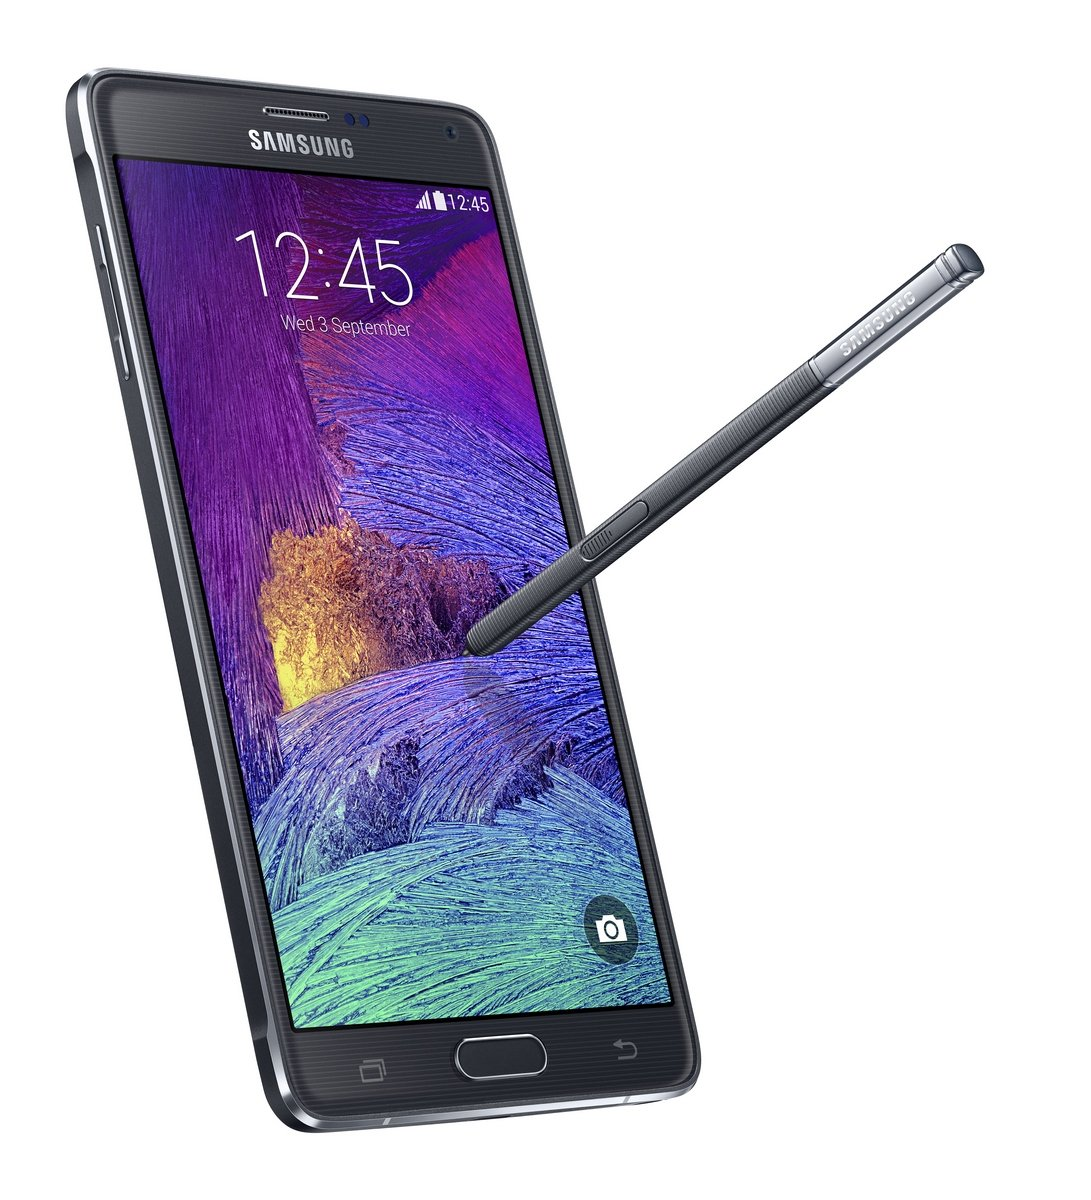 samsung galaxy note 4 4g lte 32gb 3 go ram sans abonnement. Black Bedroom Furniture Sets. Home Design Ideas